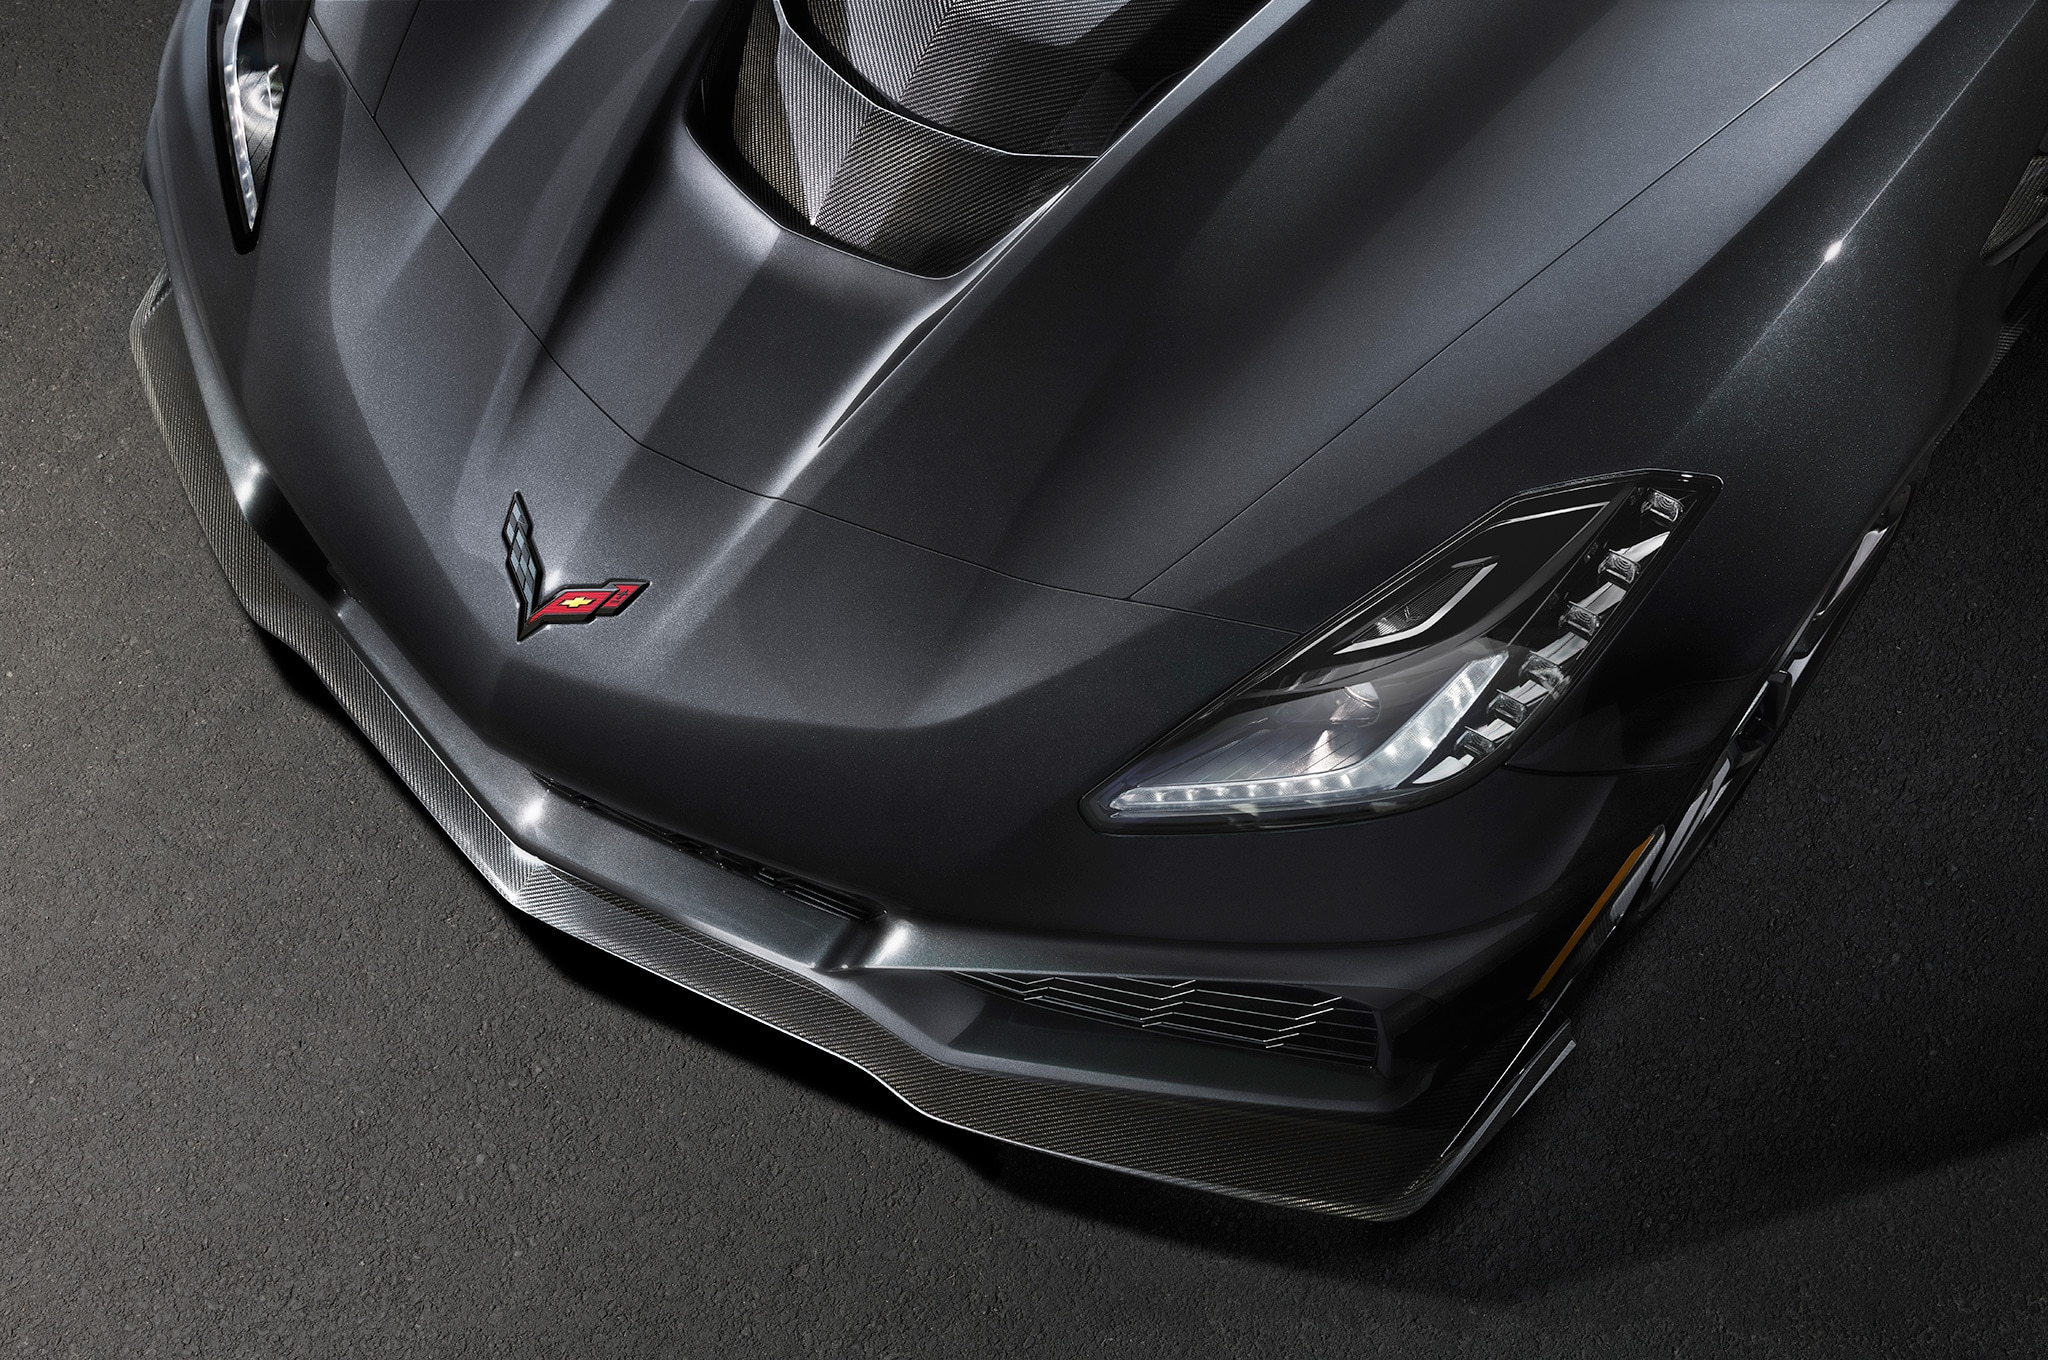 Chevrolet unveils latest Corvette ZR1 with a massive 6.2-liter V8 engine